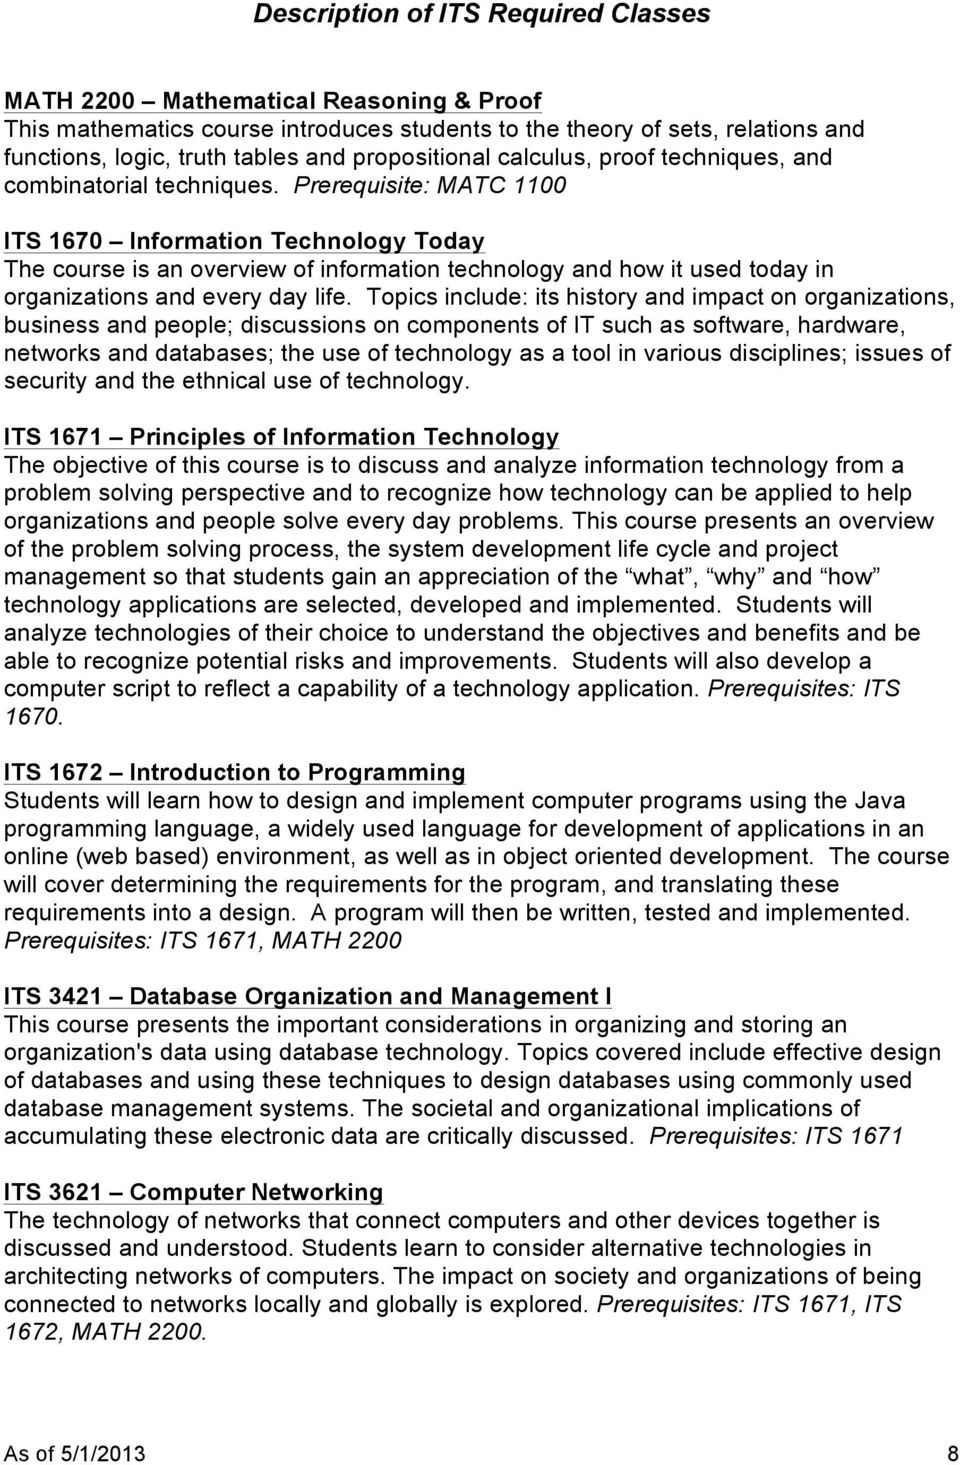 Prerequisite: MATC 1100 ITS 1670 Information Technology Today The course is an overview of information technology and how it used today in organizations and every day life.